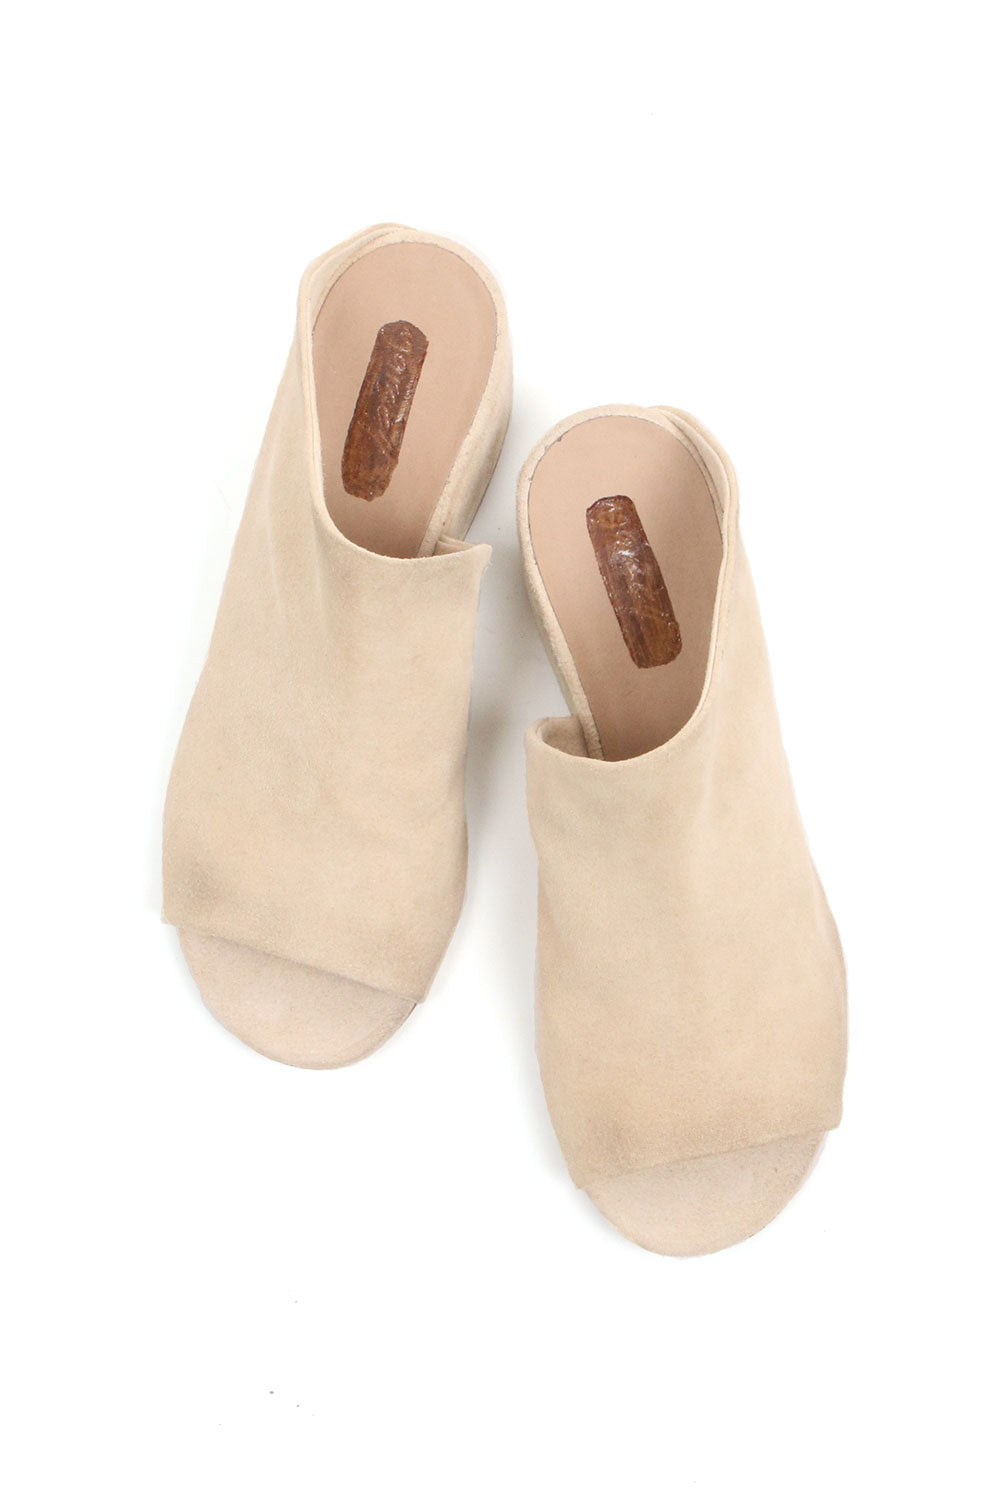 Cubetto Sandal in Biscuit from Marsell